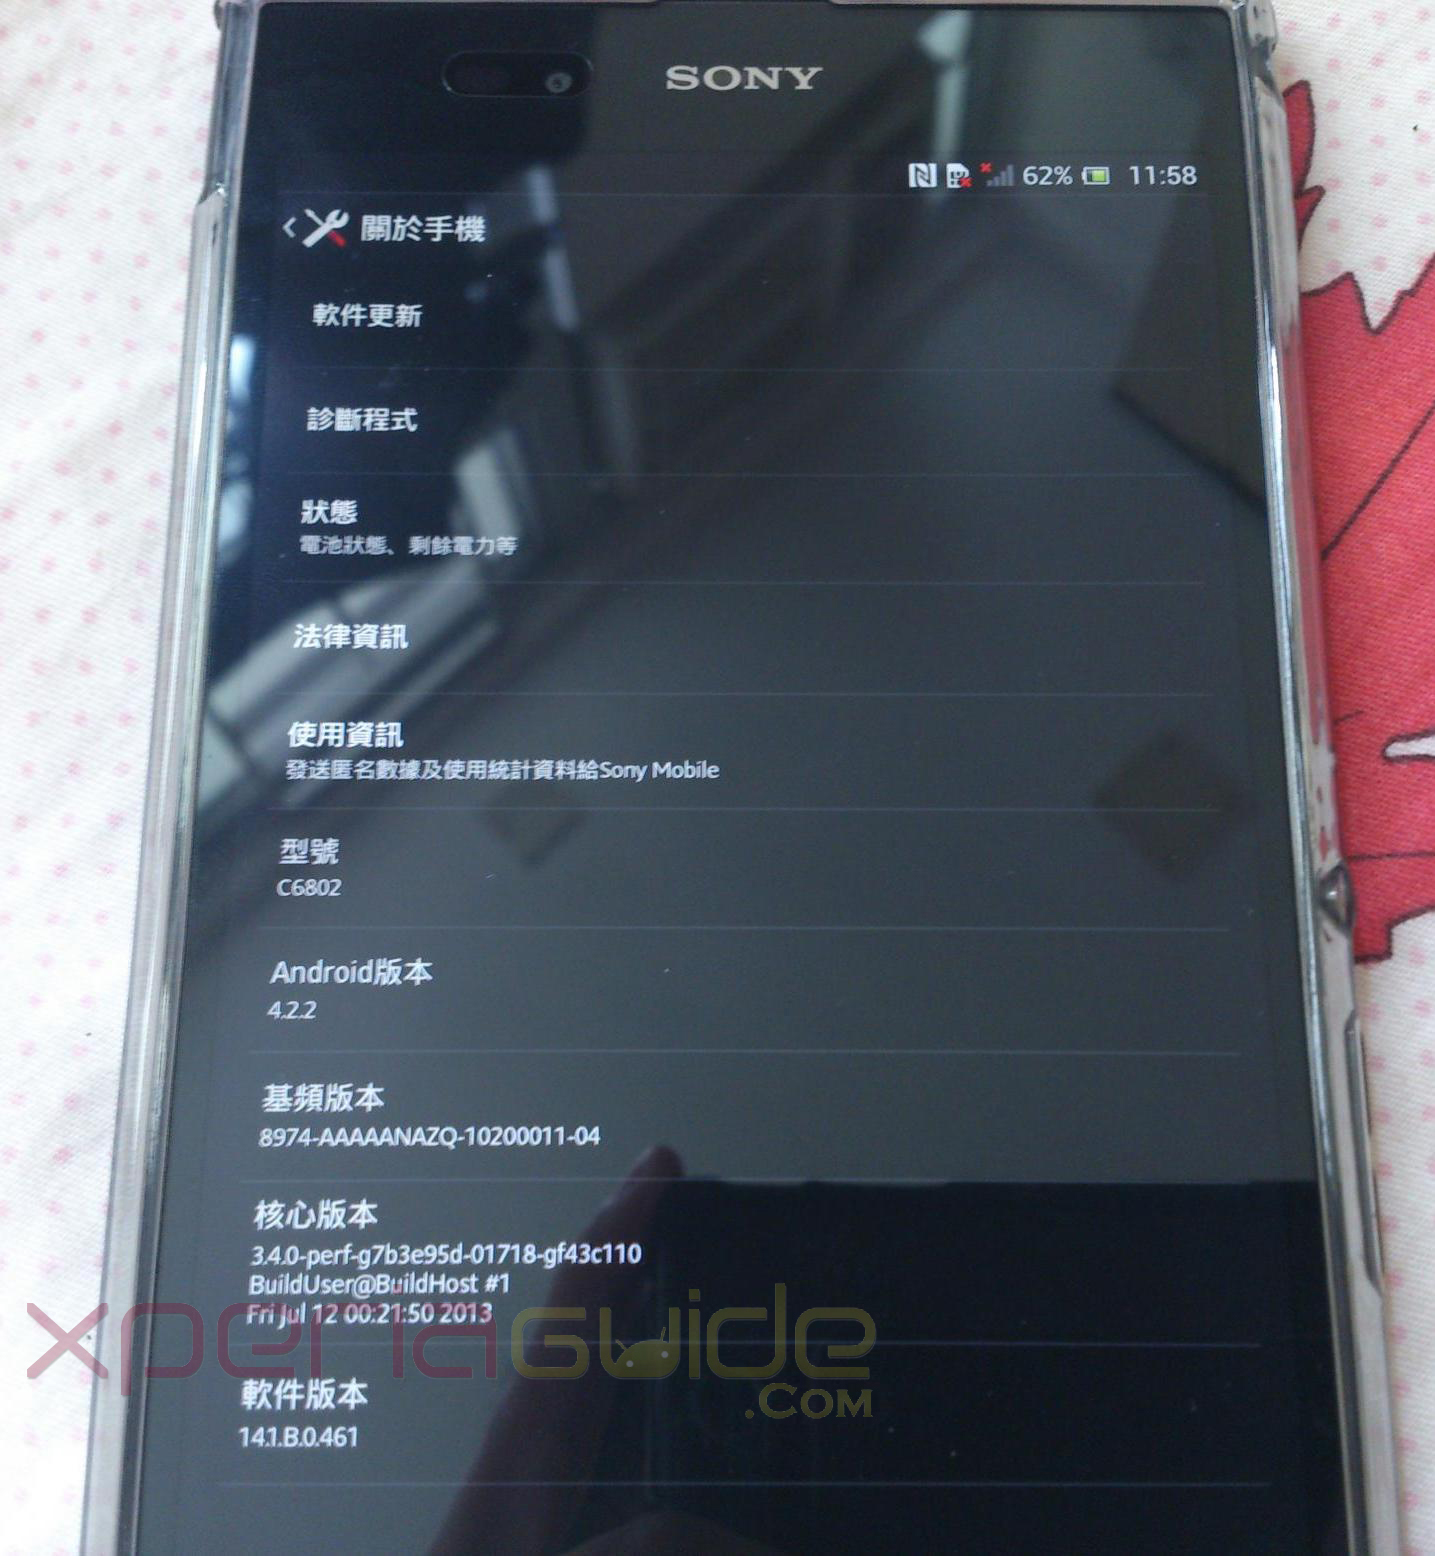 Xperia Z Ultra C6802 Android 4.2.2 14.1.B.0.461 firmware Details